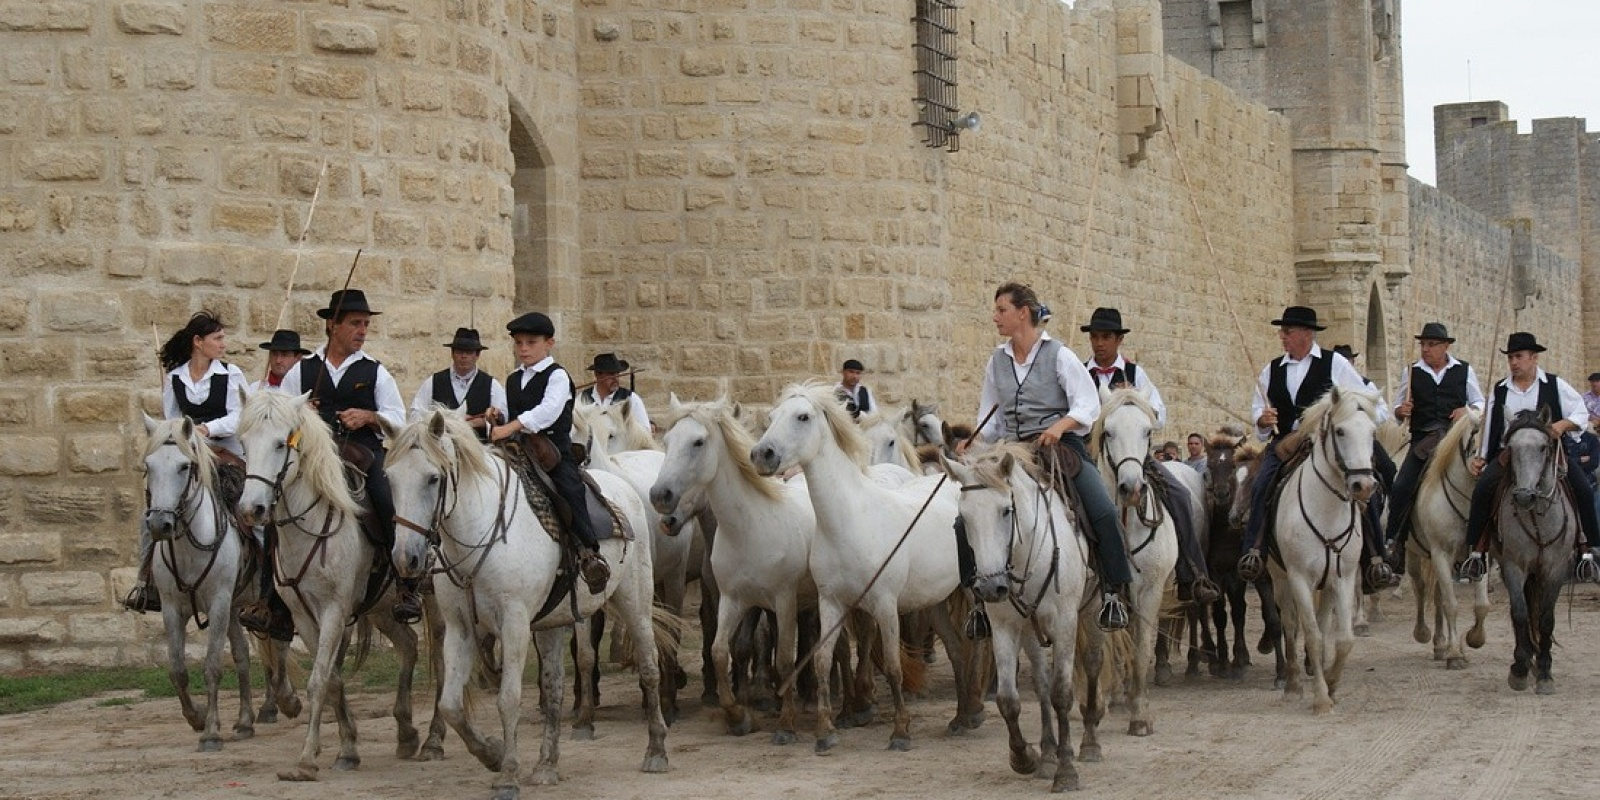 Les traditions de la Camargue